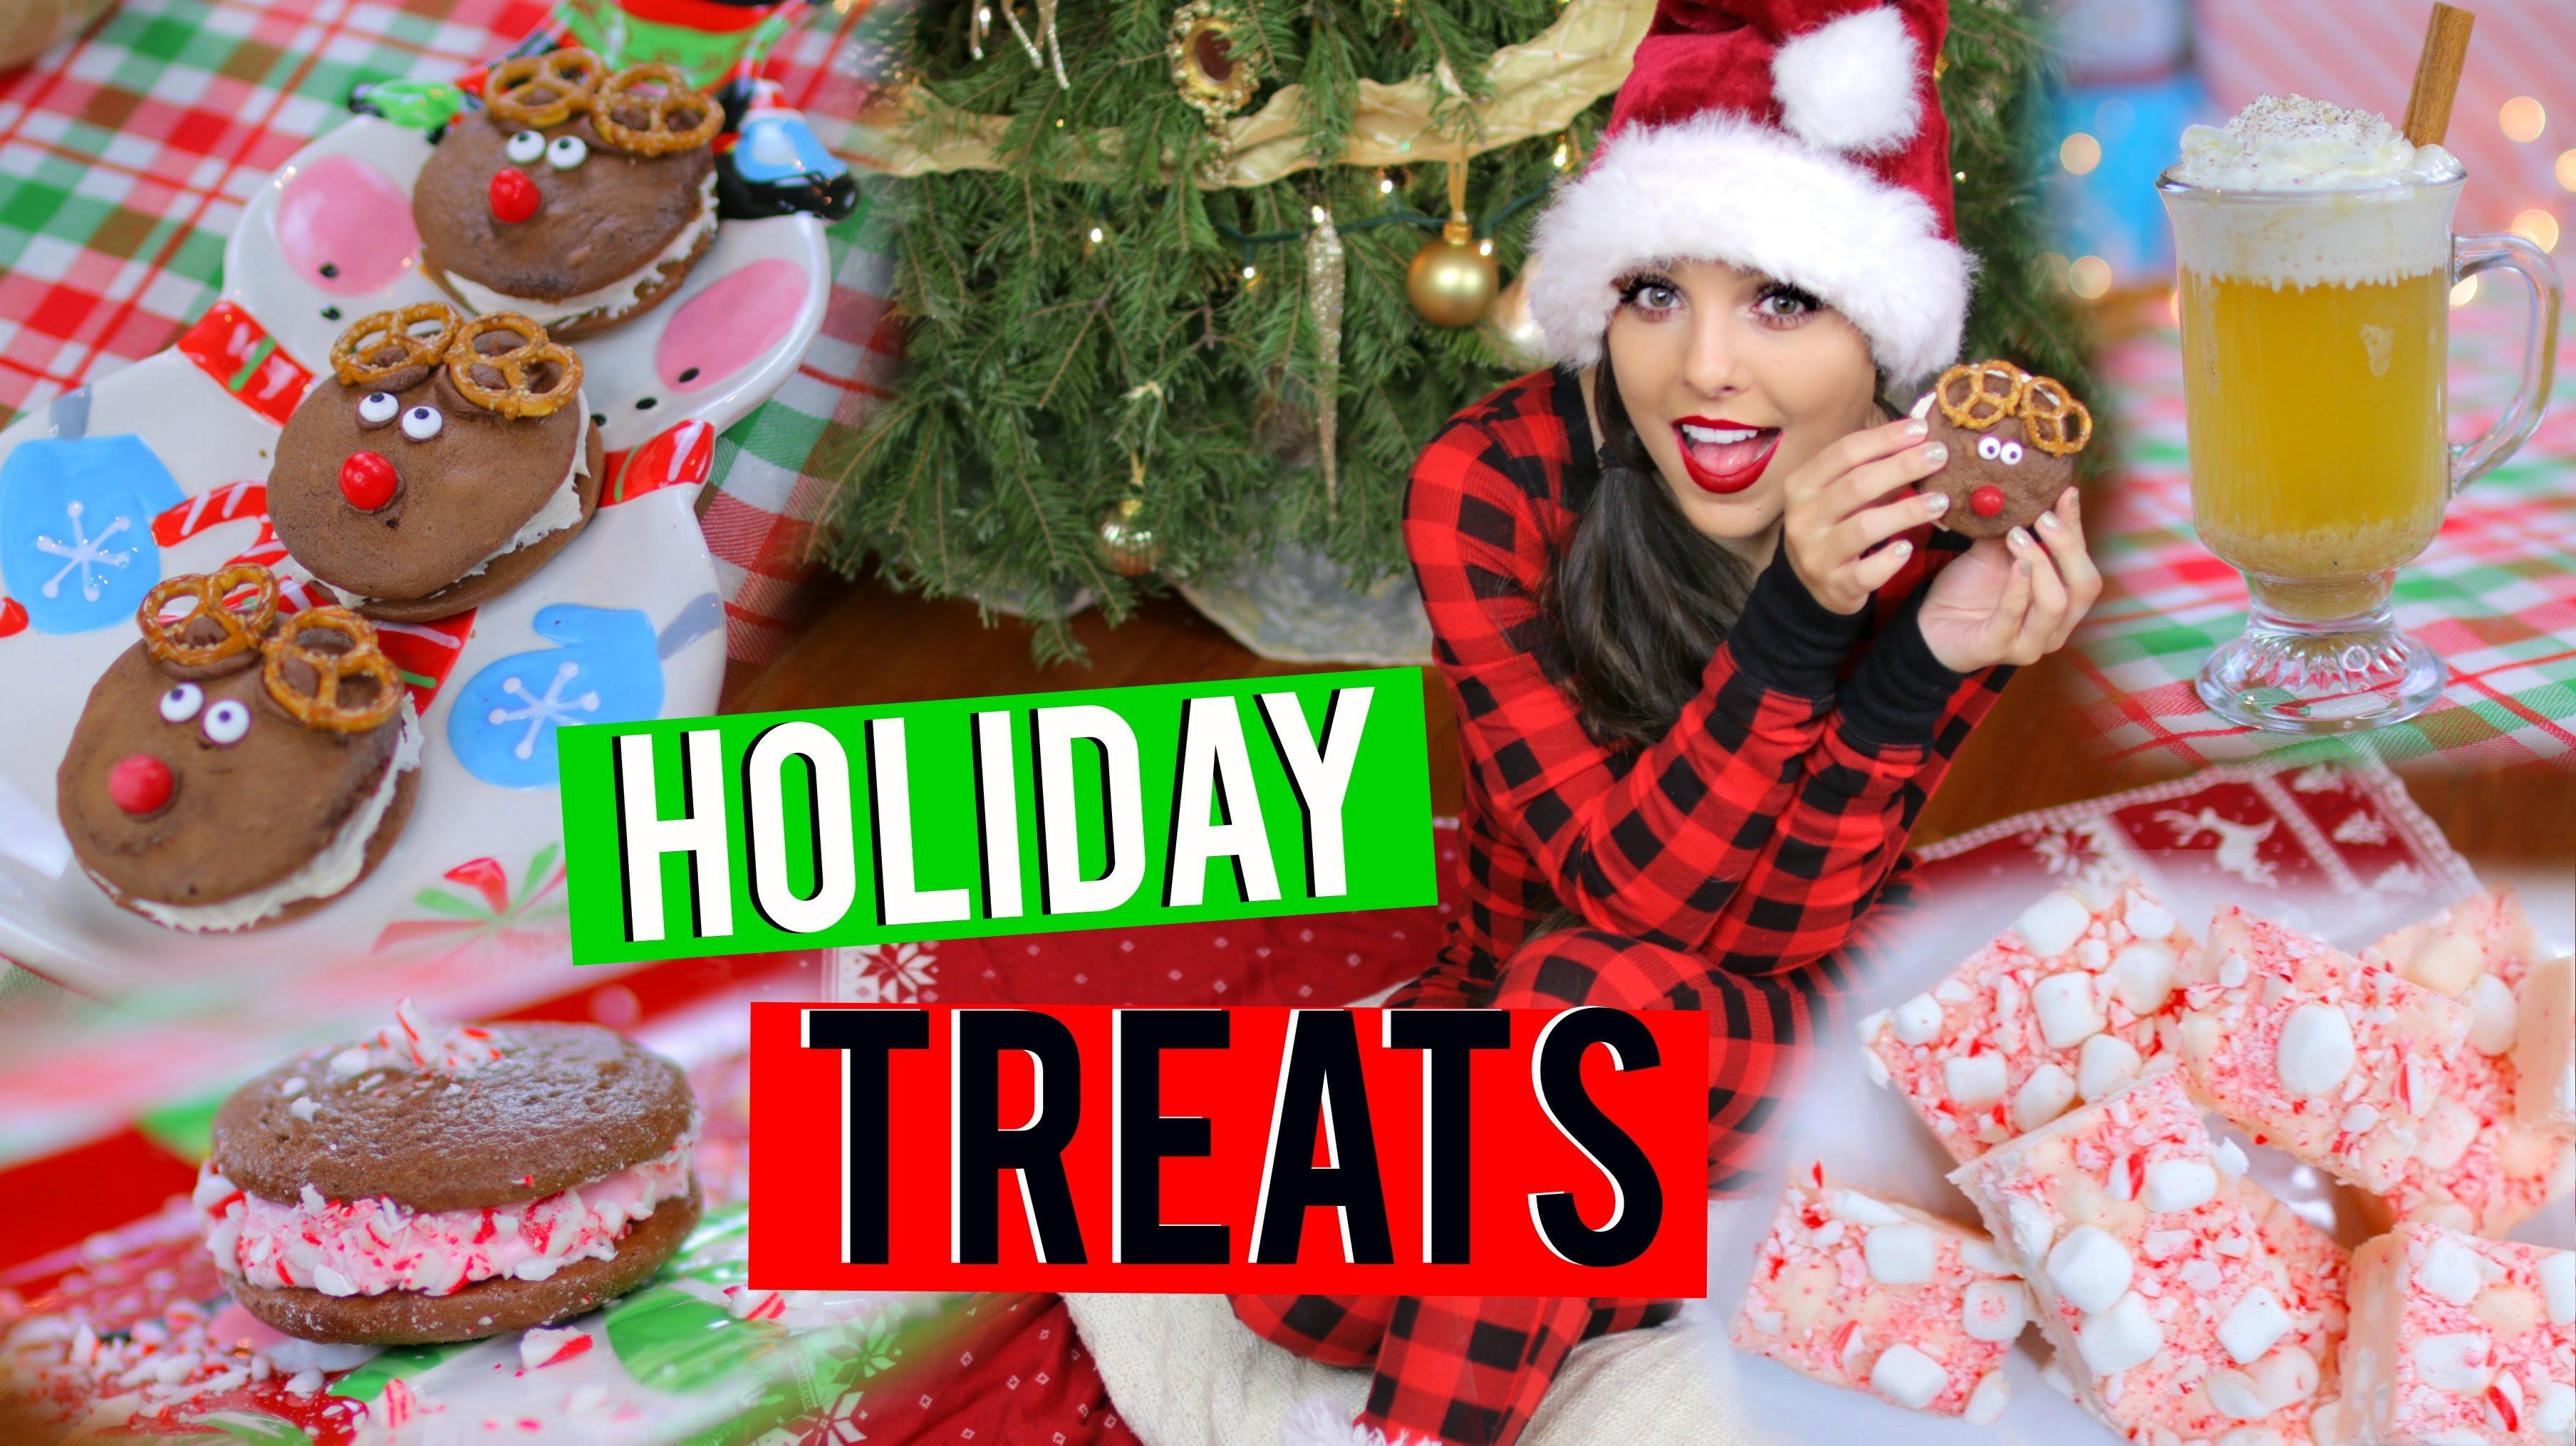 DIY Holiday Treats | Fast and Easy for Christmas! | Kristi-Anne Beil